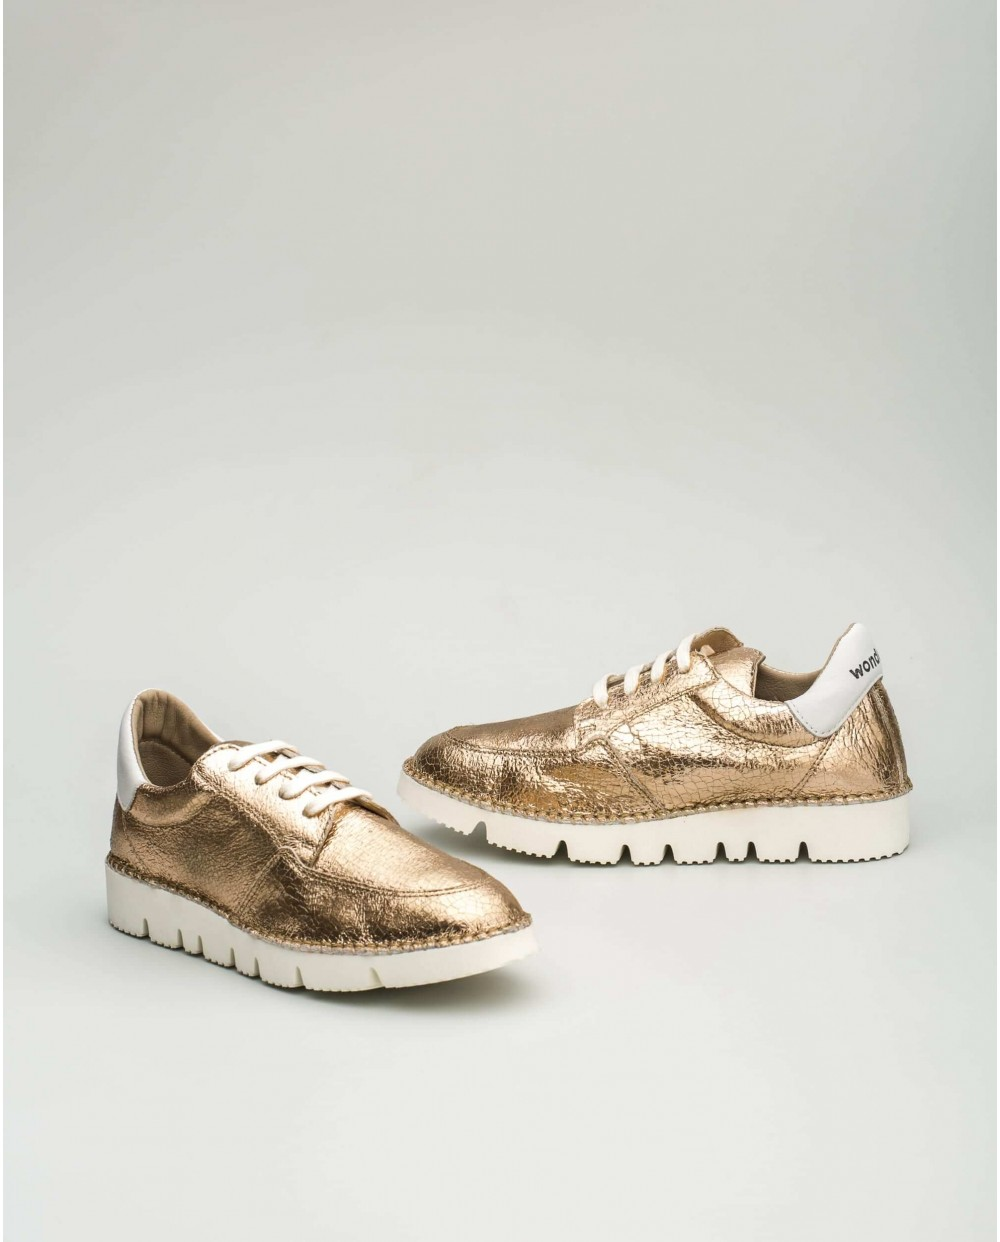 Ultralight metallic sneakers